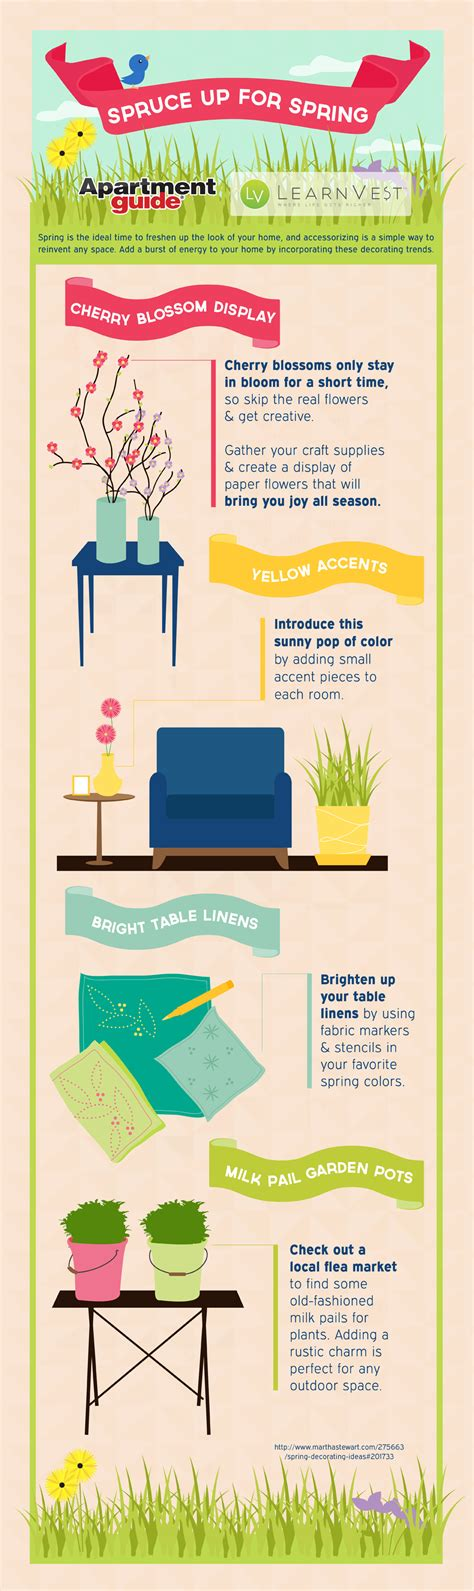 Spruce up for Spring: Freshen up Your Home (Infographic)   ApartmentGuide.com